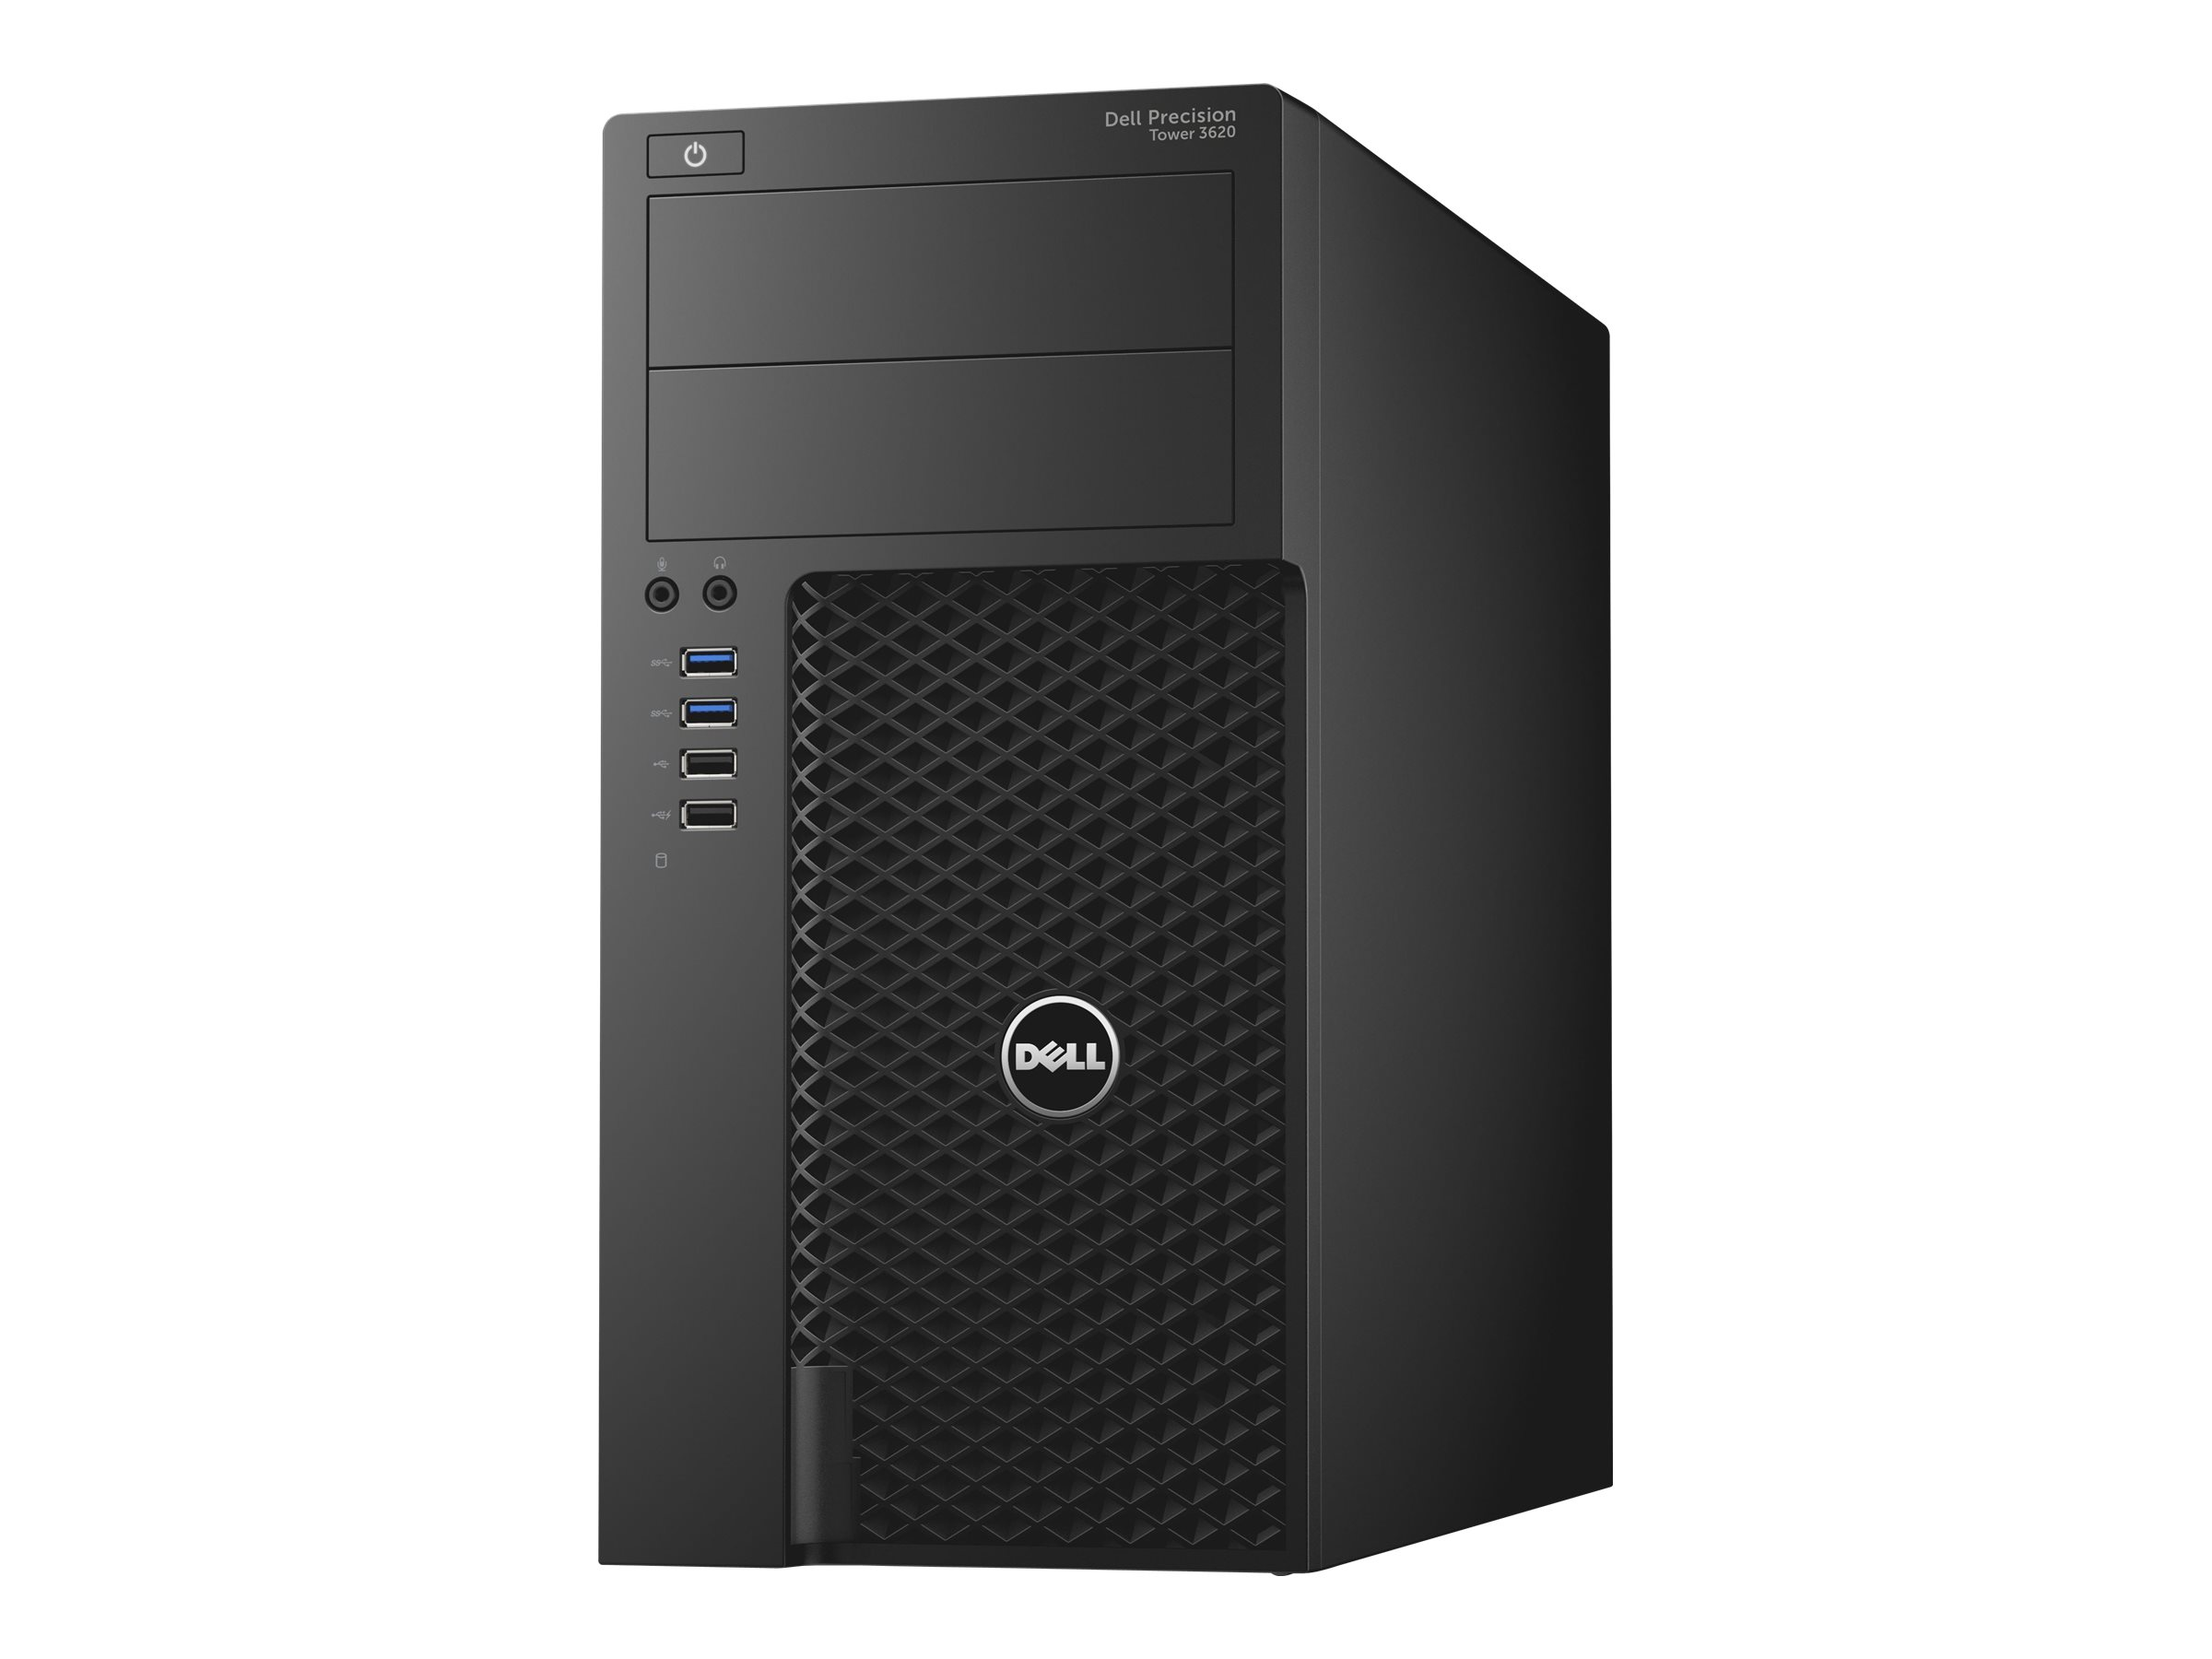 Dell Precision Tower 3620 - MDT - 1 x Core i7 6700 / 3.4 GHz - RAM 16 GB - HDD 1 TB - DVD-Writer